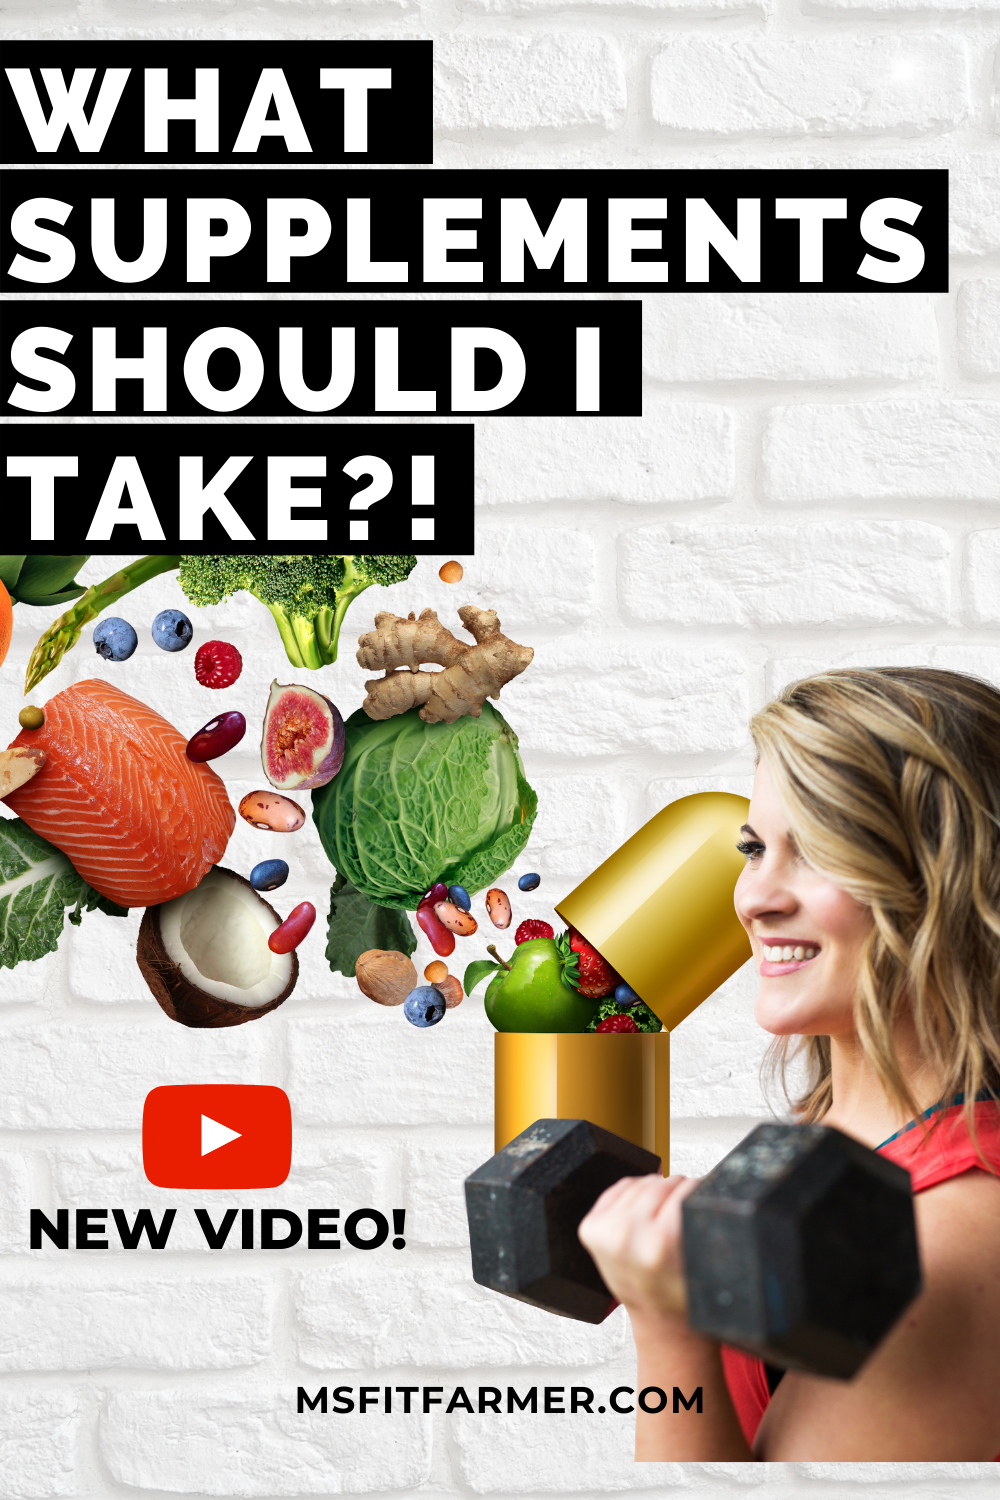 Best Supplements to Take For Overall Health: How To Support Your Healthy Lifestyle